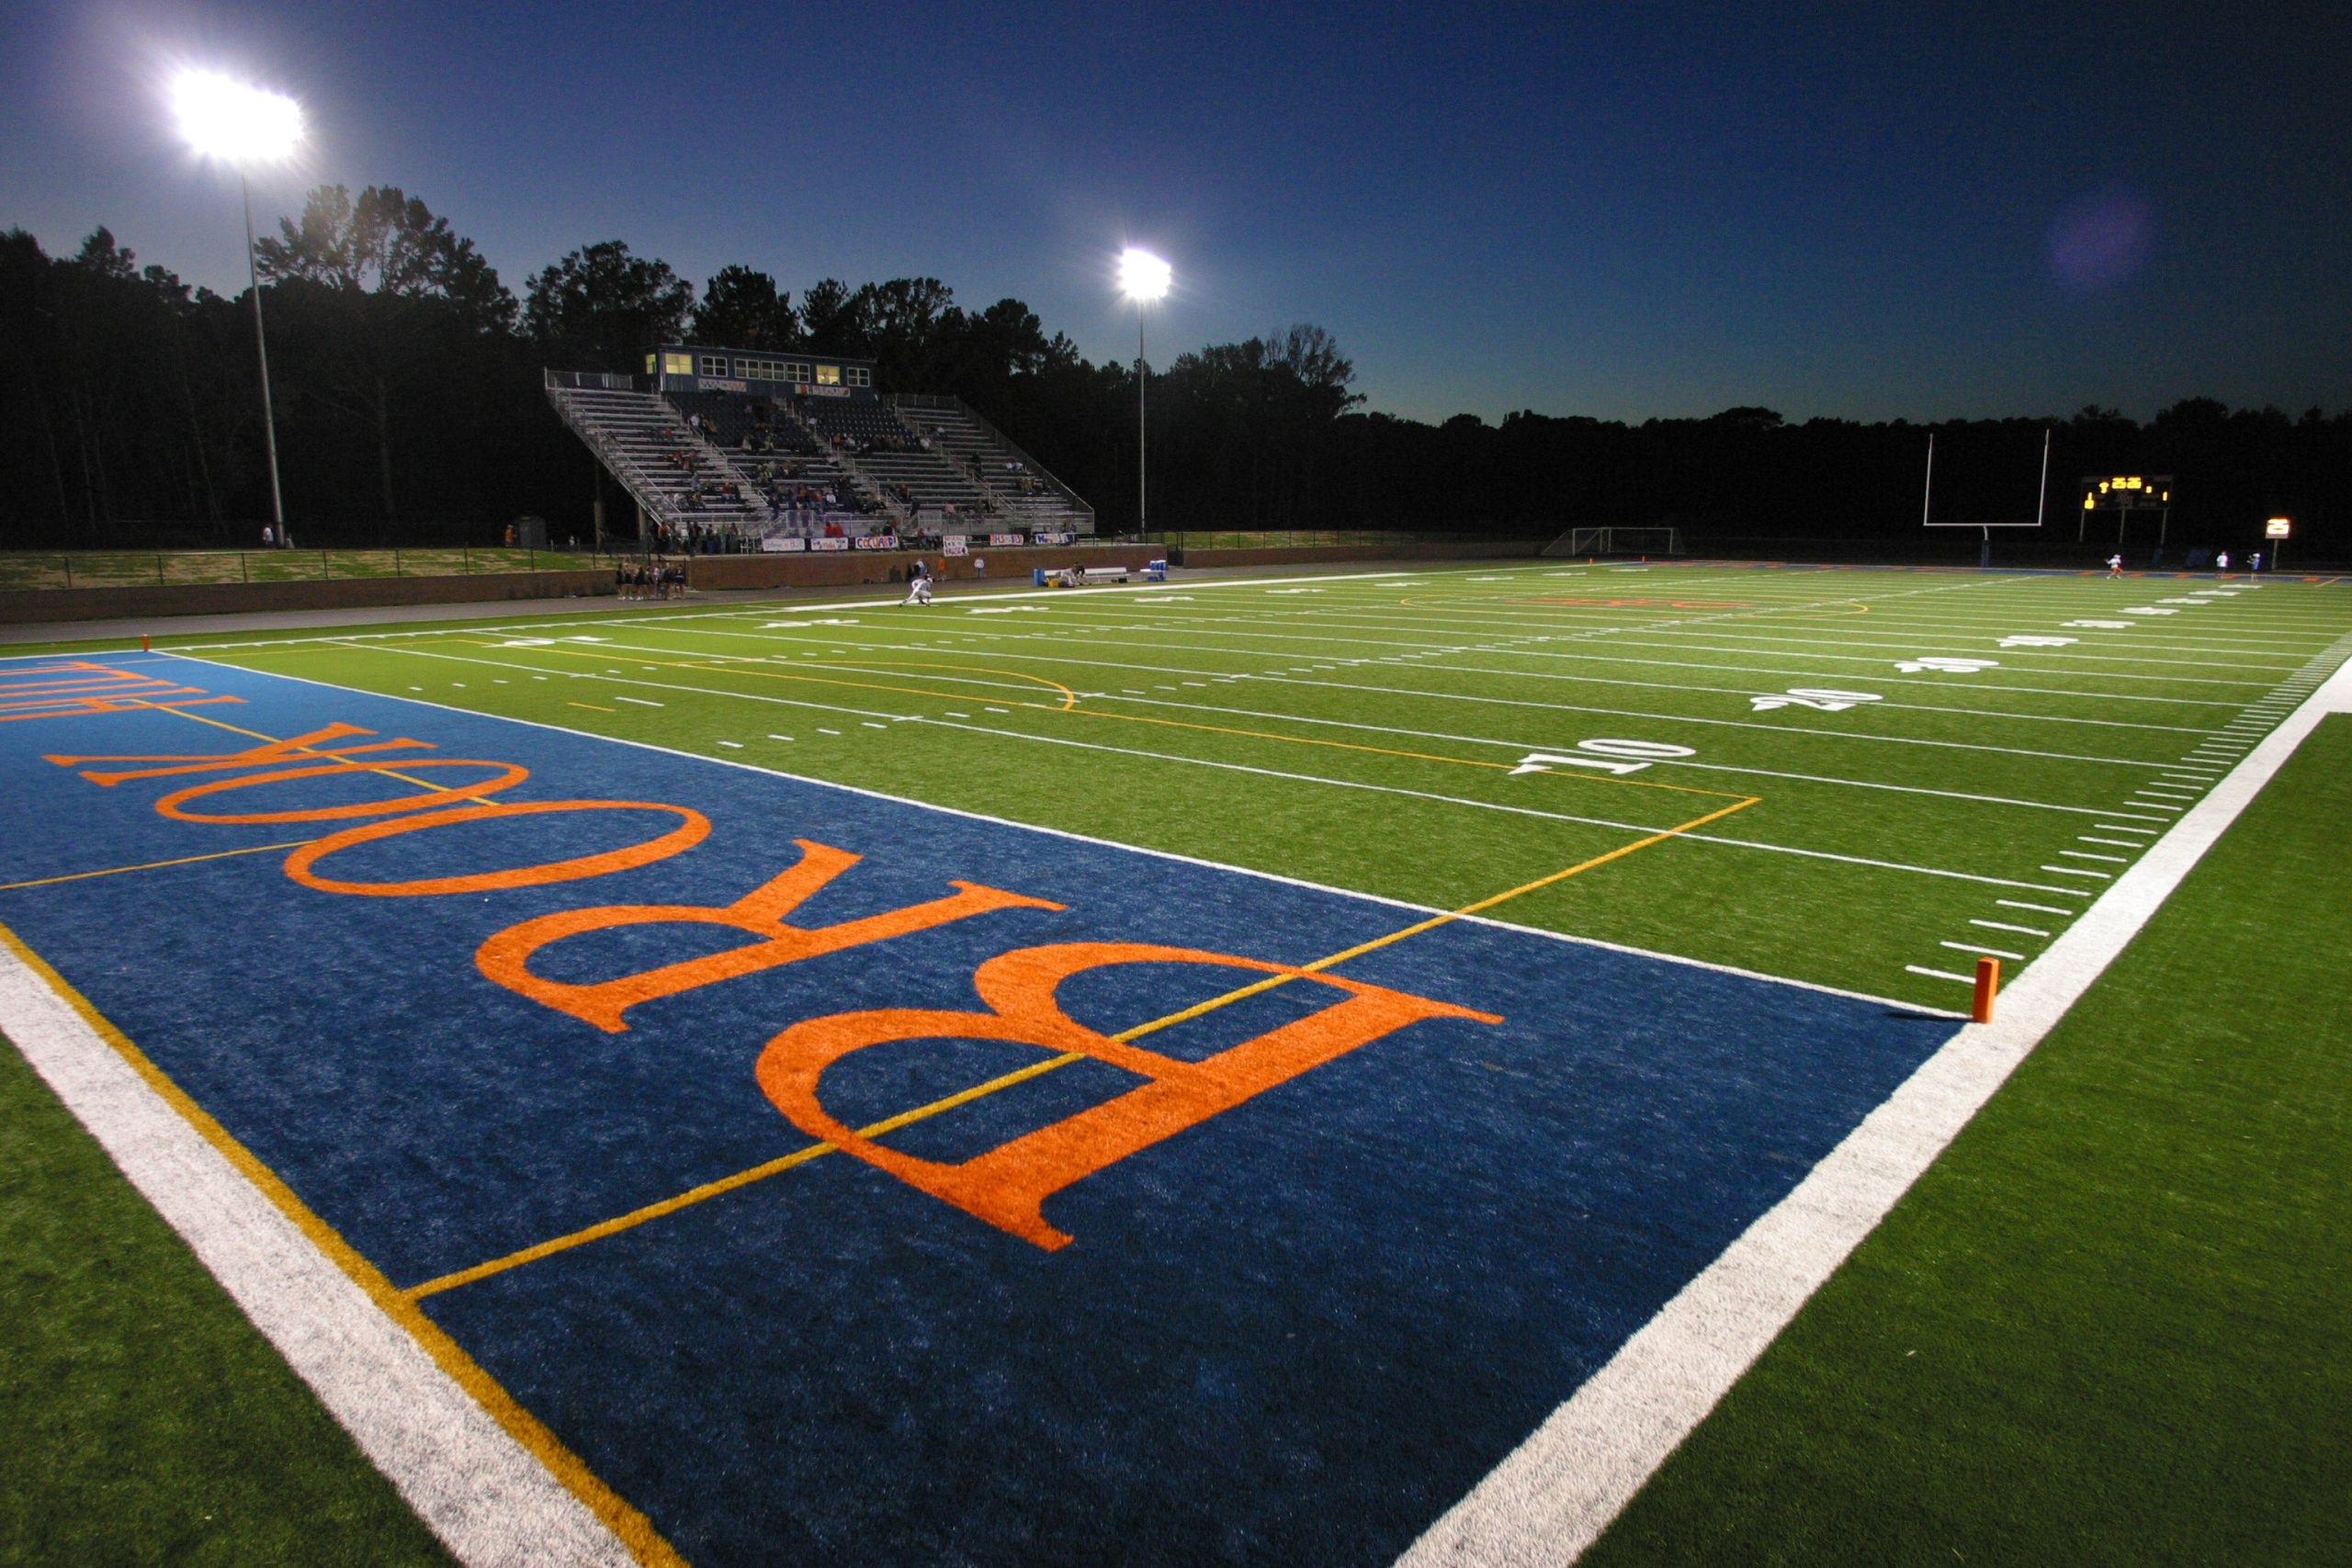 sports architecture east texas - tyler based recreation contractor - design build sports facilities texas - butler architectural group